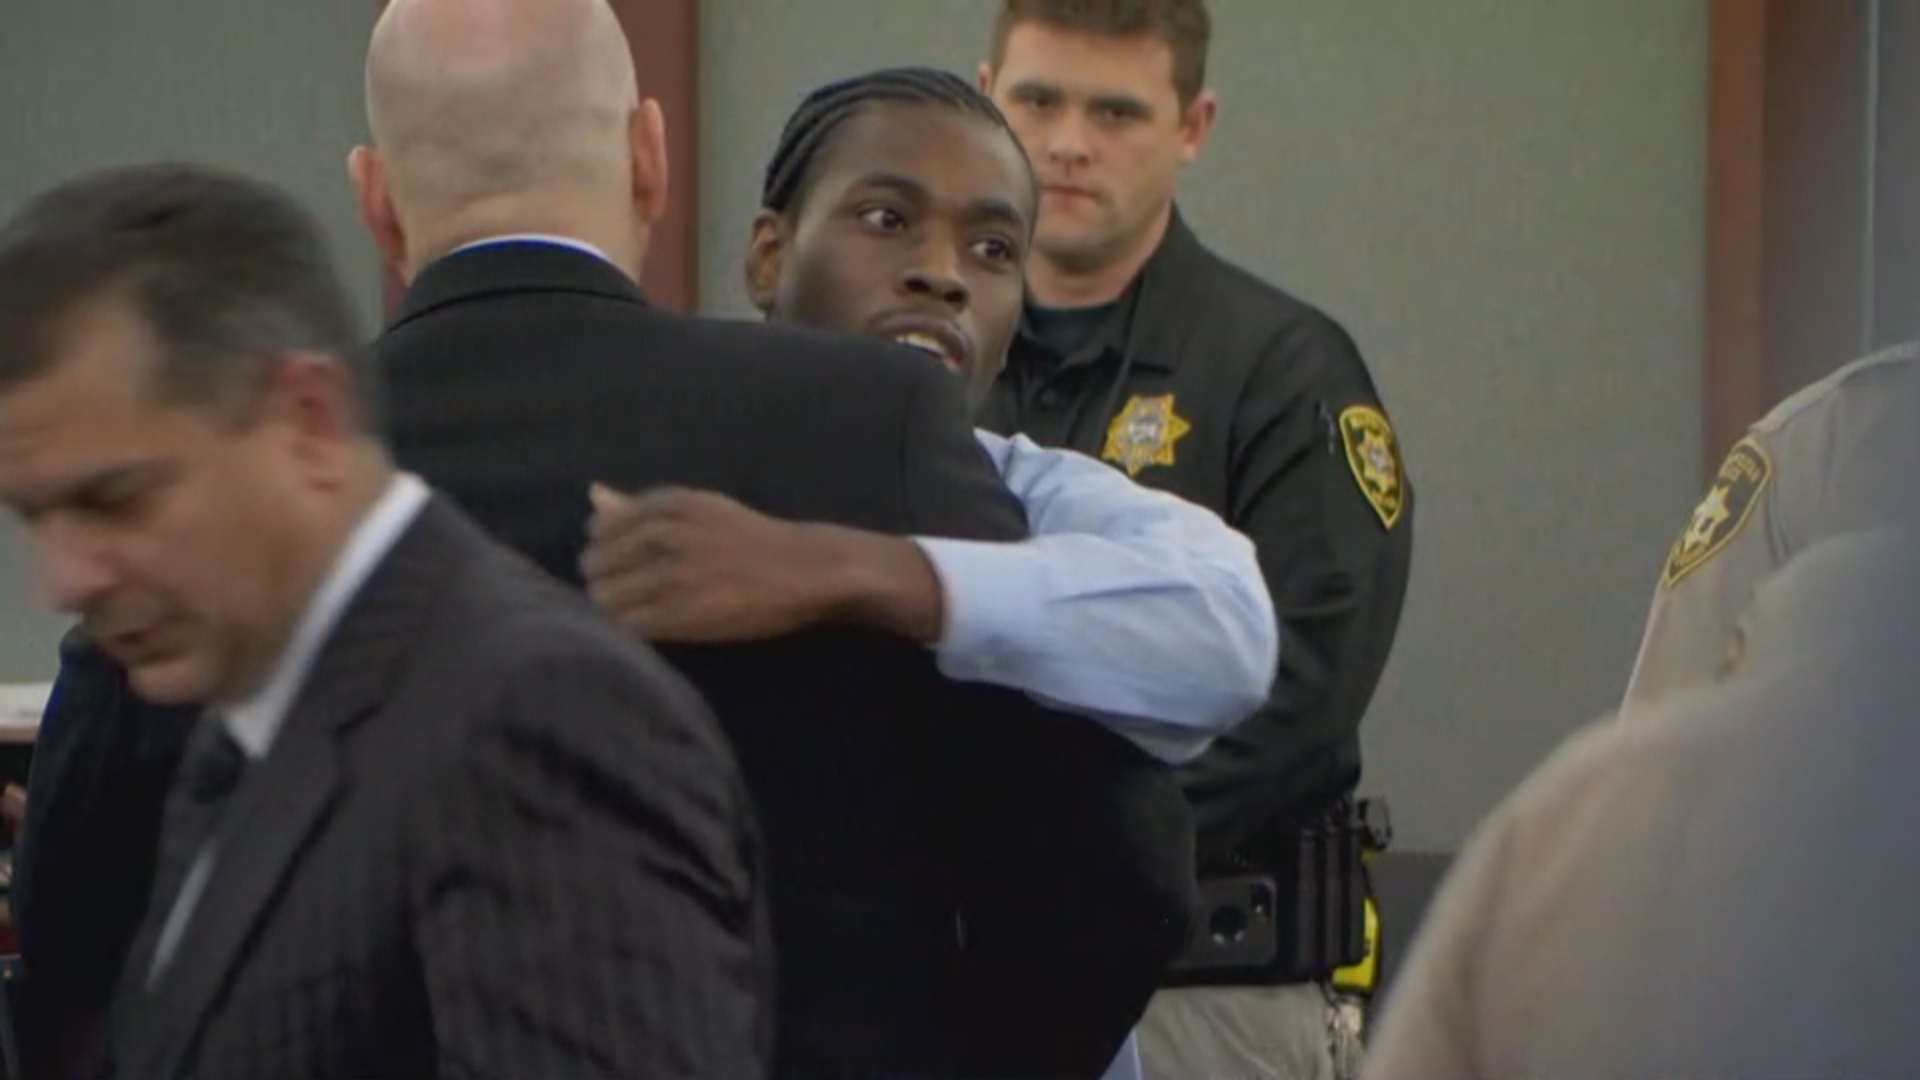 Bryan Clay hugs defense attorney Christopher Oram after receiving a verdict of life without parole Tuesday, December 5, 2017, at the Regional Justice Center in Las Vegas. (KSNV)